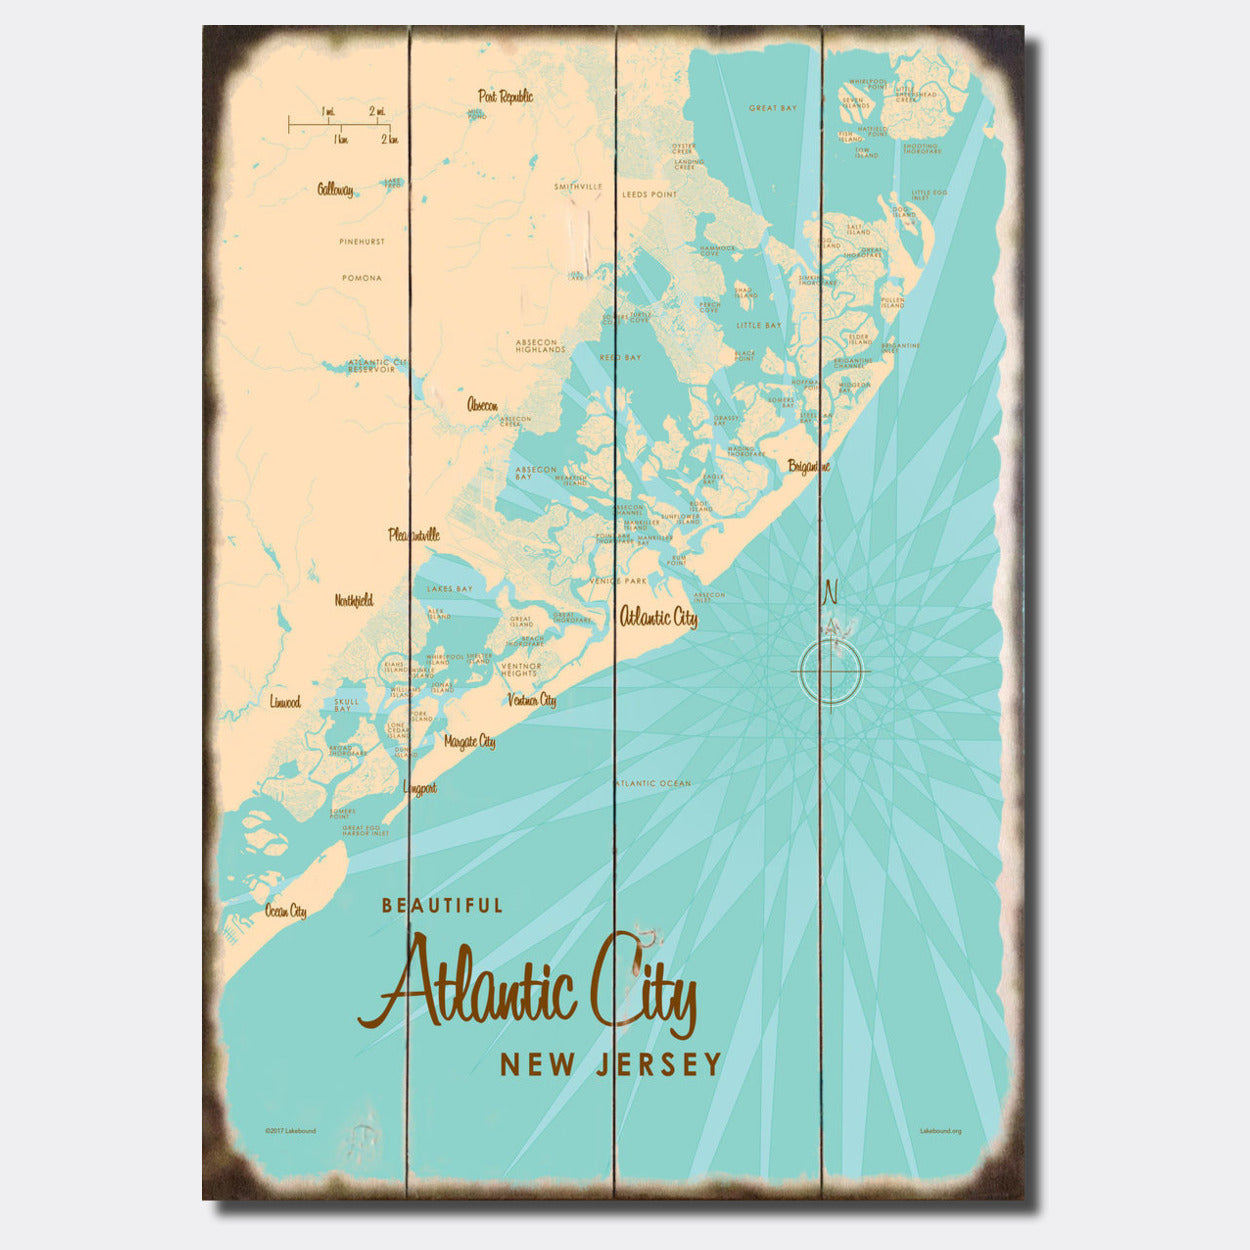 Atlantic City New Jersey, Sign